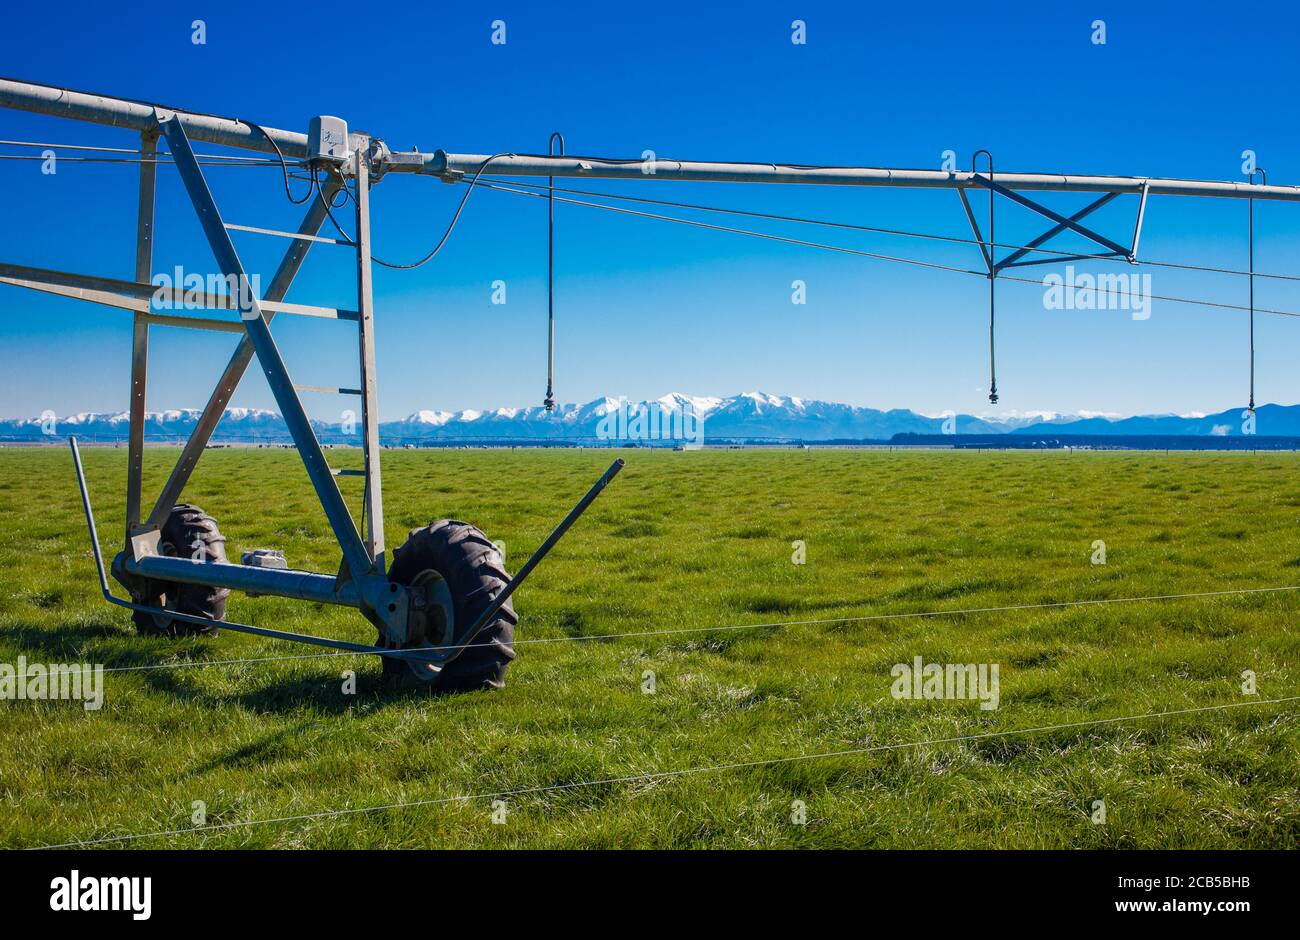 New Zealand Countryside Scenes: Irrigation Infrastructure: Centre-pivot Irrigator watering a circular or semi-circular paddock. Stock Photo